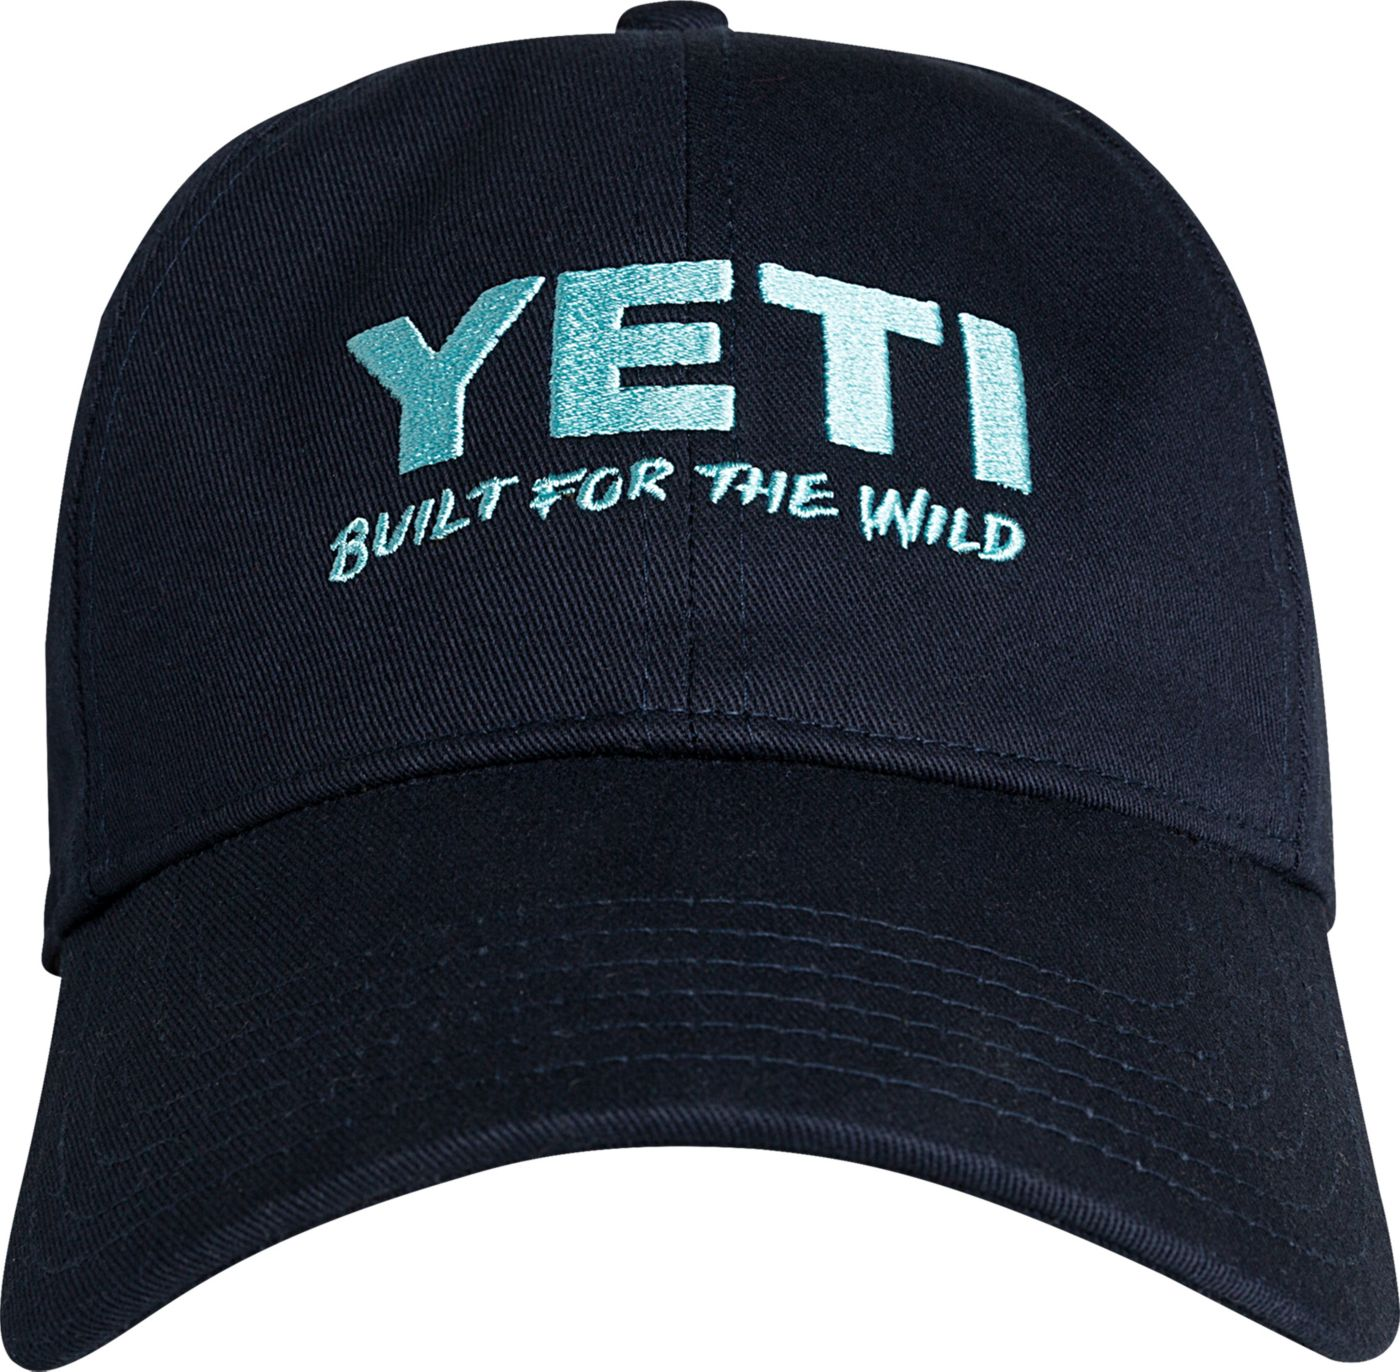 YETI Built For The Wild Cap